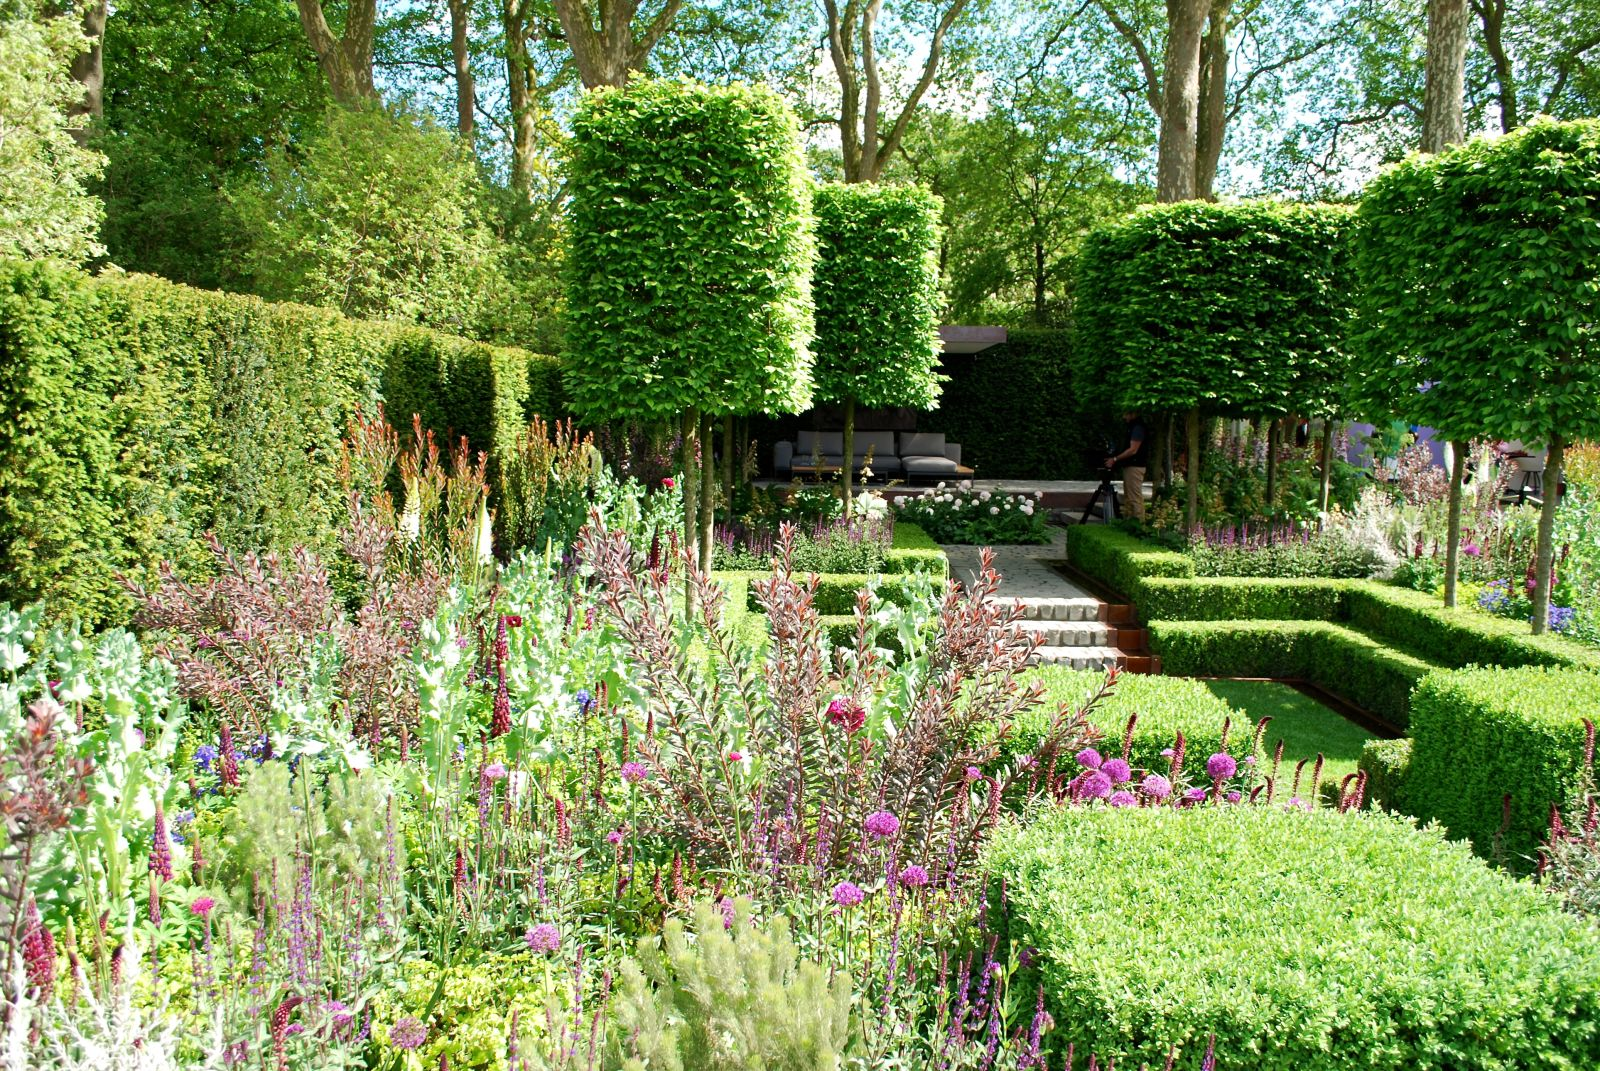 7 chelsea flower show garden trends you can replicate at home - Garden By The Bay Flower Show